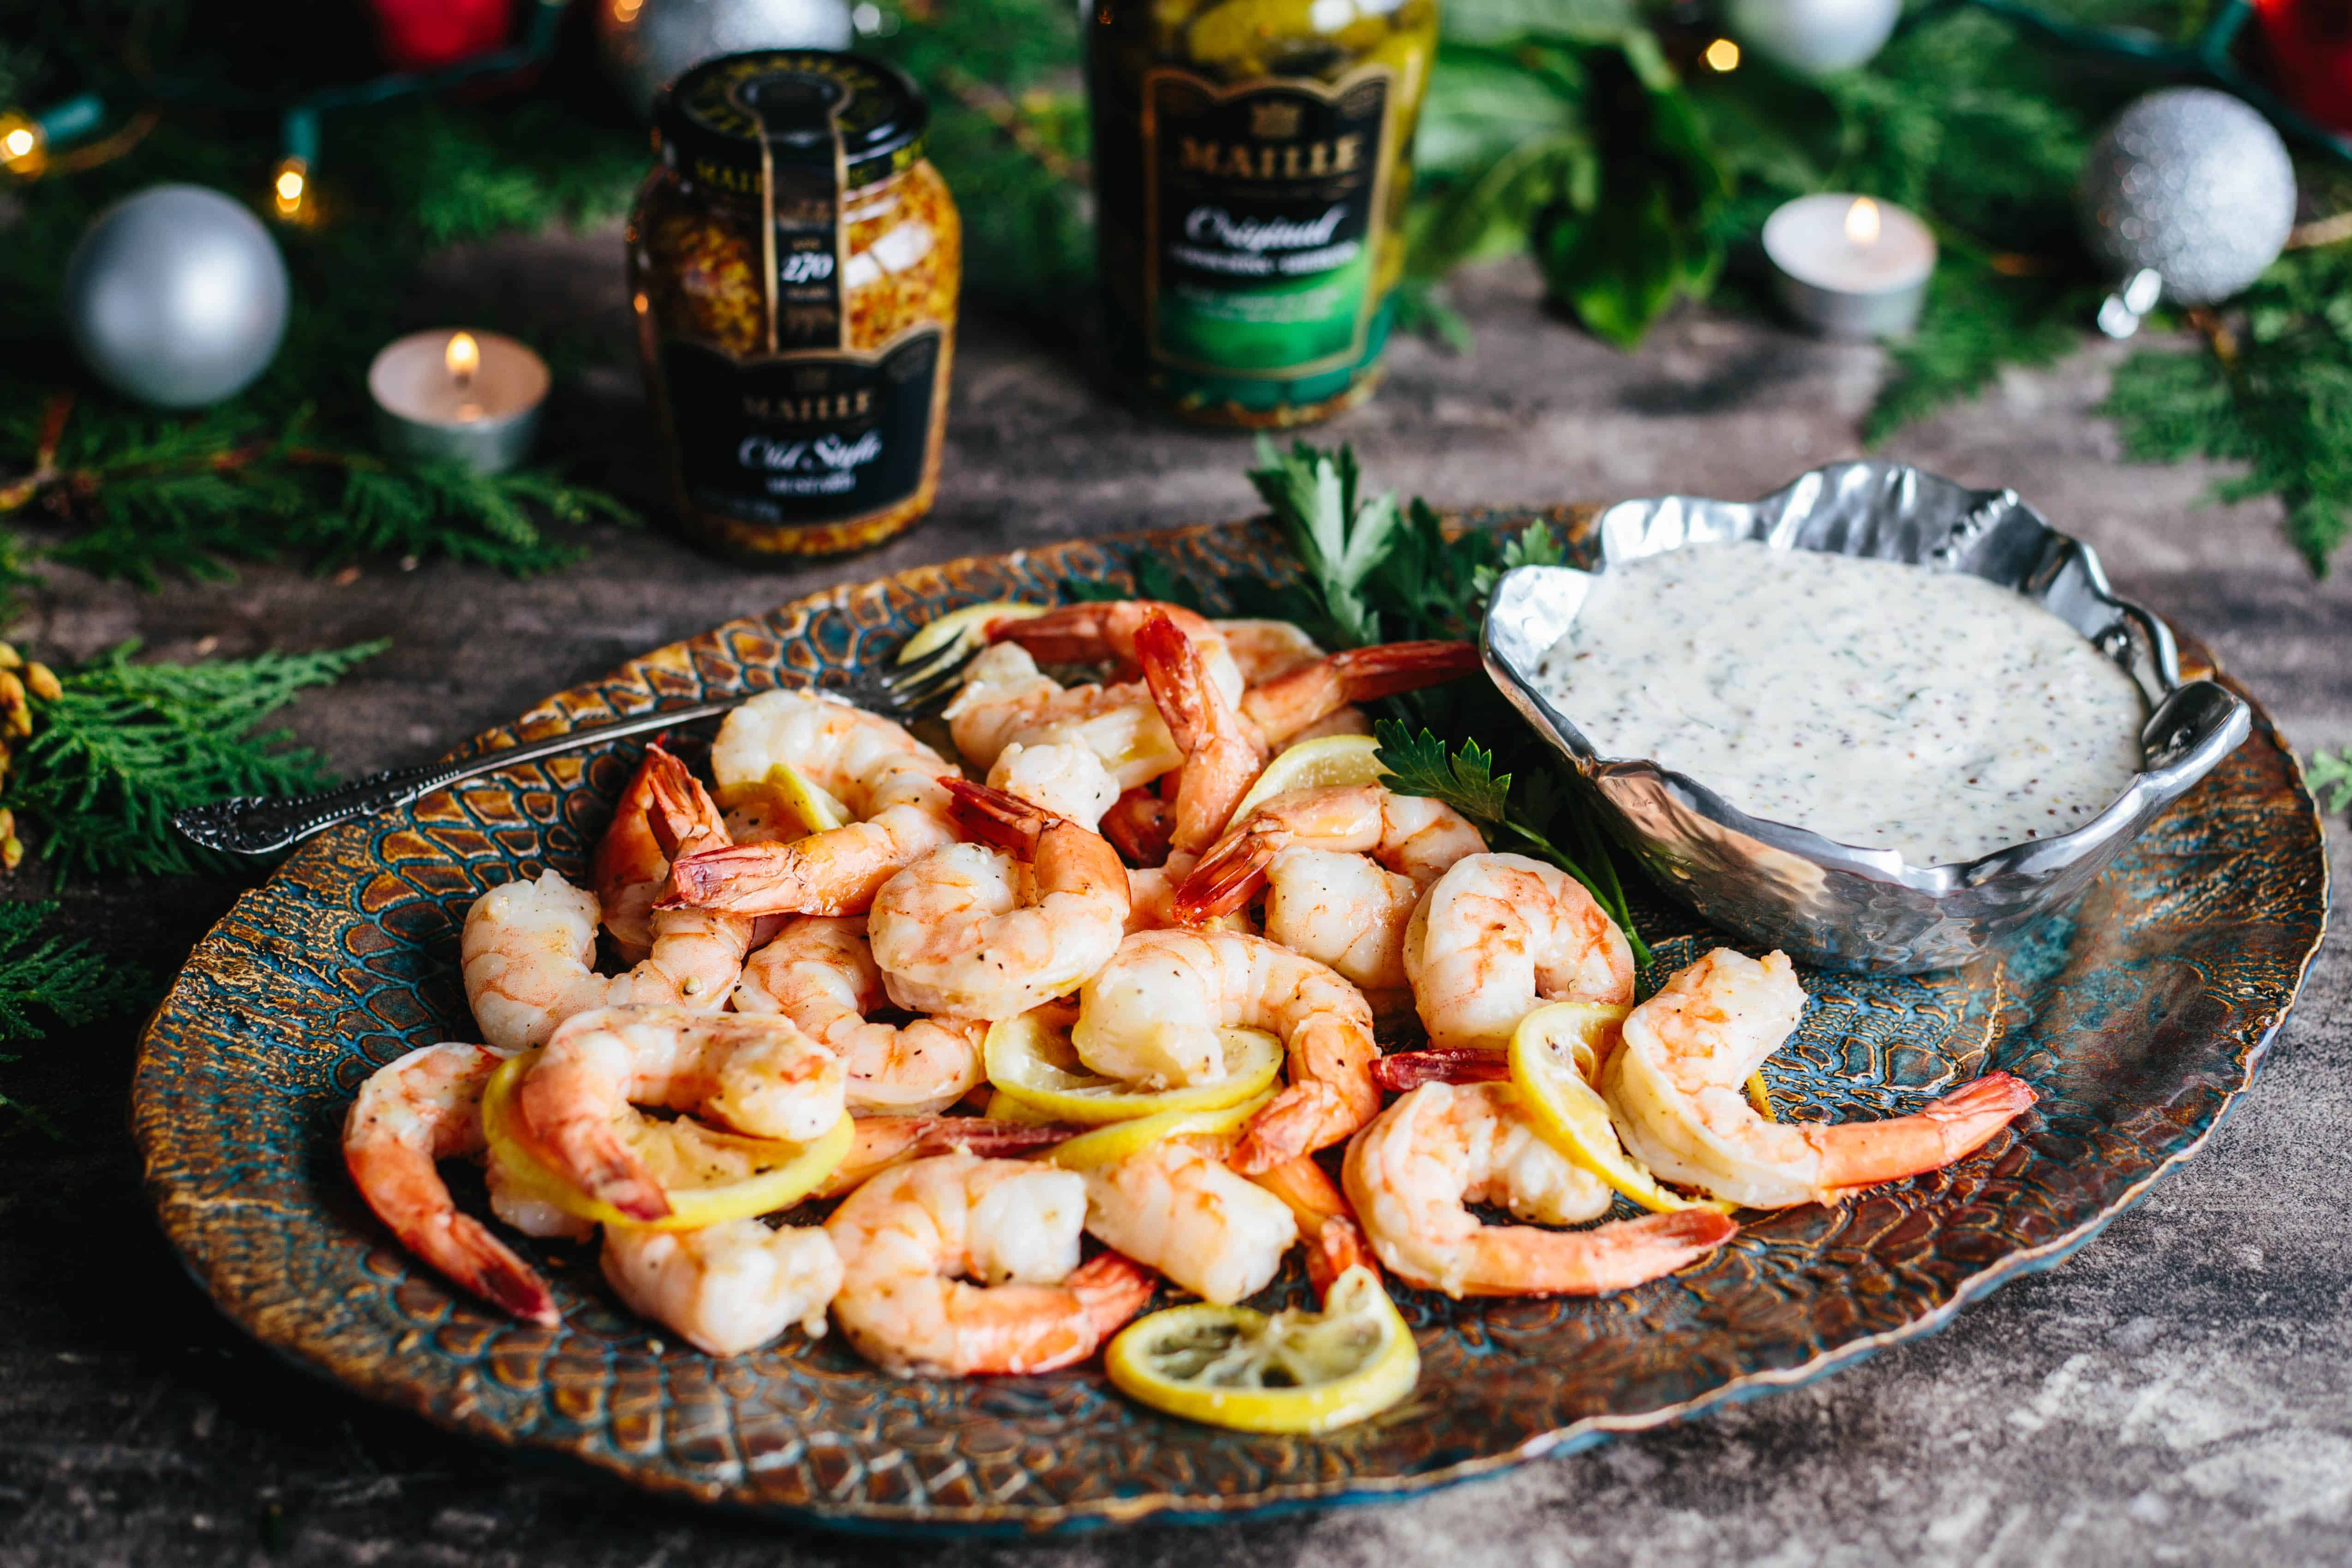 Roasted Shrimp Cocktail with Whole Grain Mustard Sauce | This super easy recipe is a unique twist on shrimp cocktail! Perfect recipe for holiday entertaining! #christmas #shrimp #shrimpcocktail #christmaseve #7fishes #recipe #easy | ColeyCooks.com